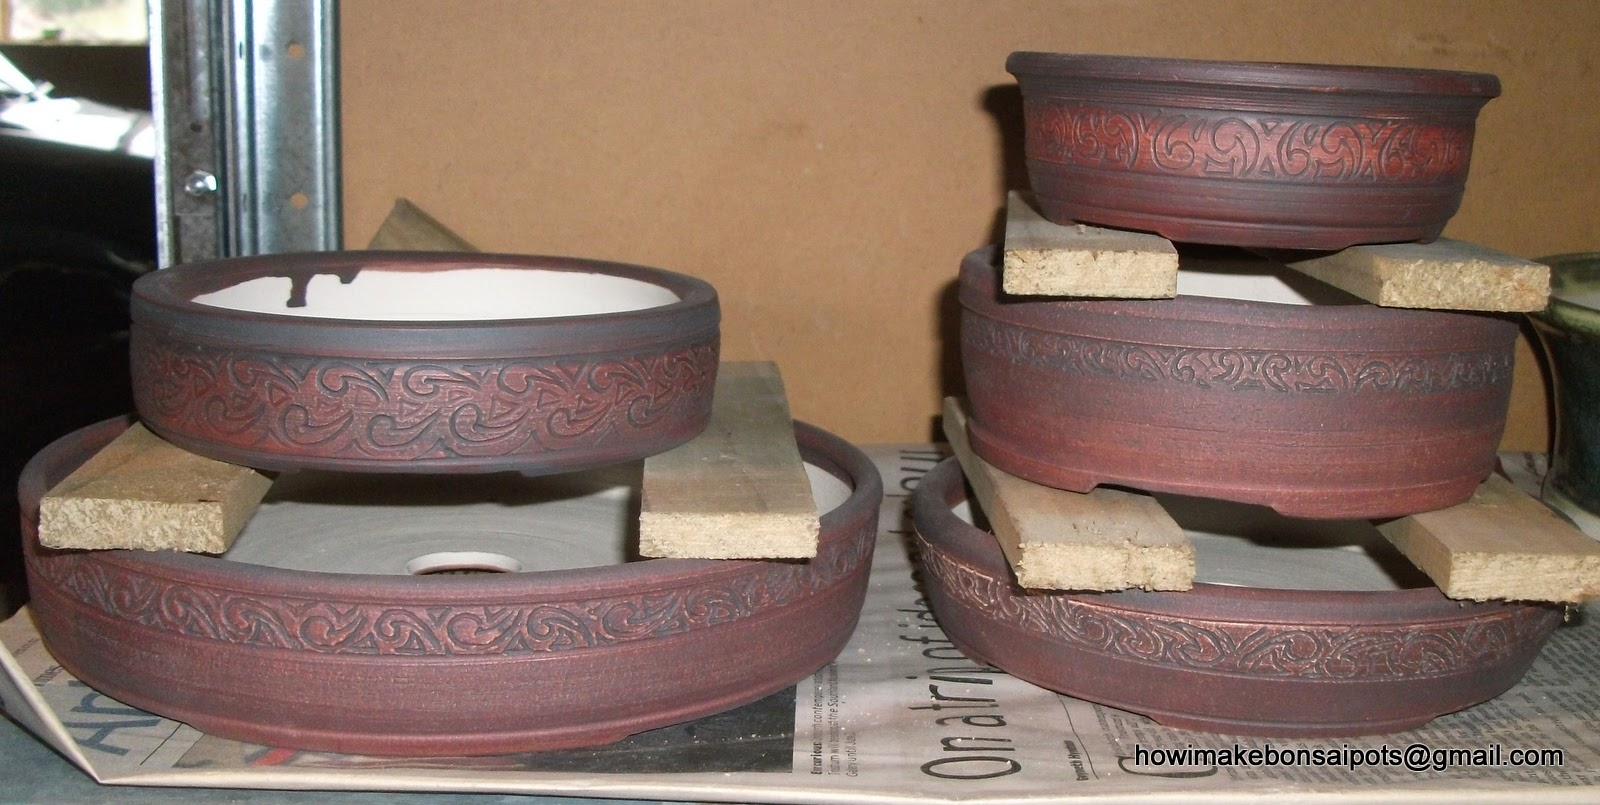 Fionna39s Bonsai Pots Kiwi Style Proudly Made In New Zealand